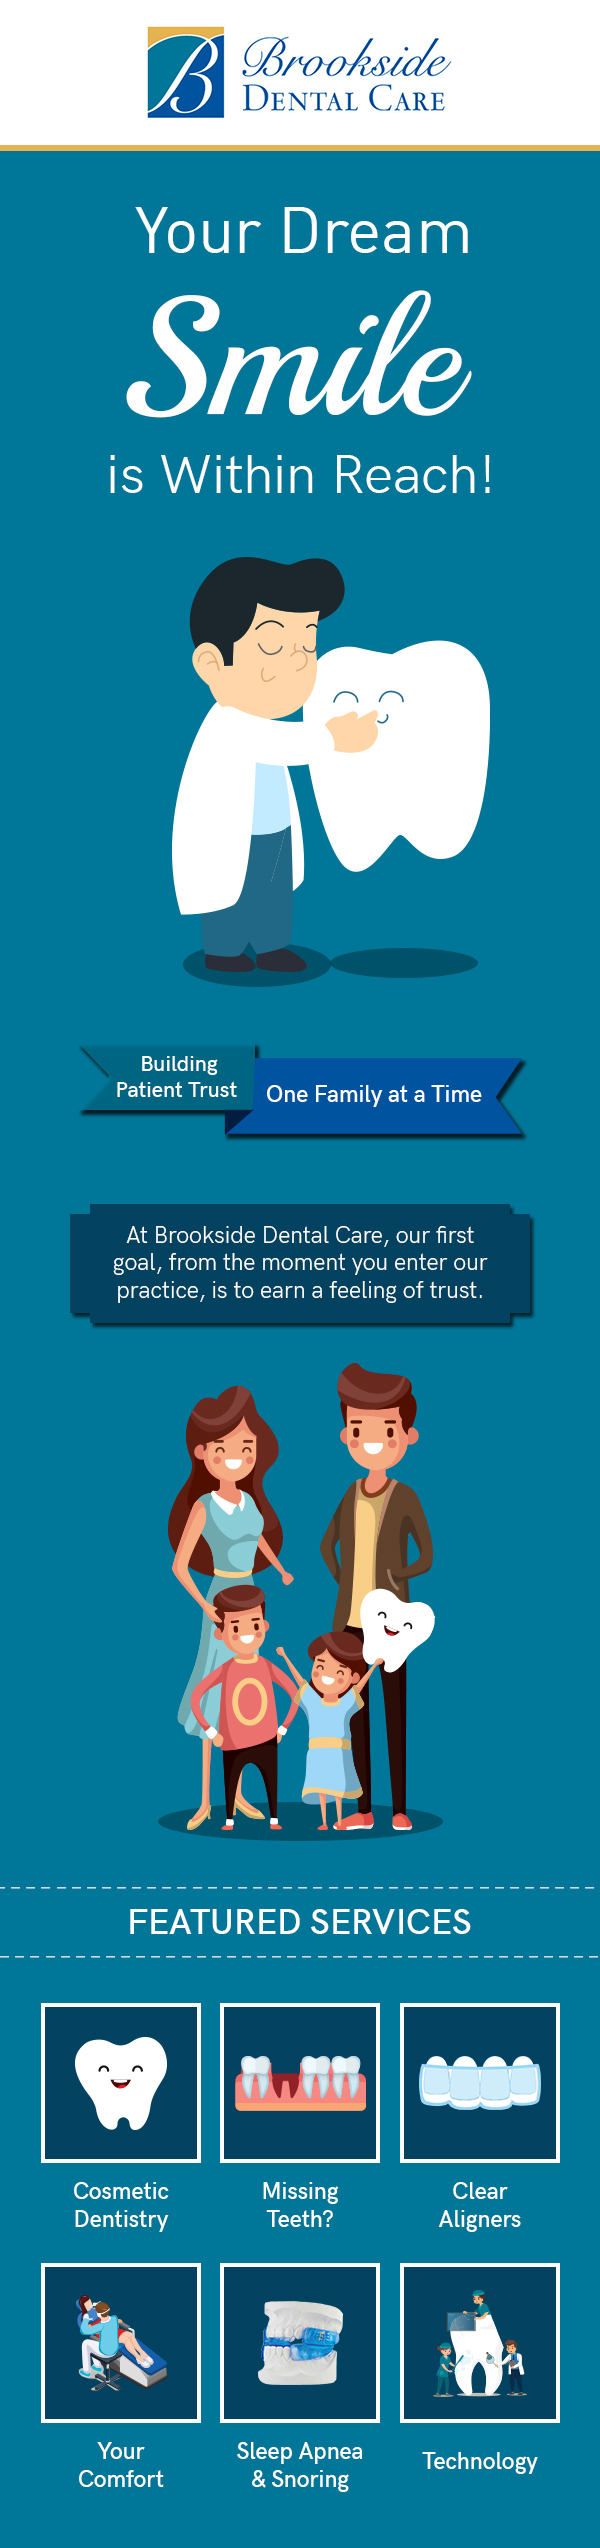 Visit Brookside Dental Care to Achieve the Smile of Your Dream